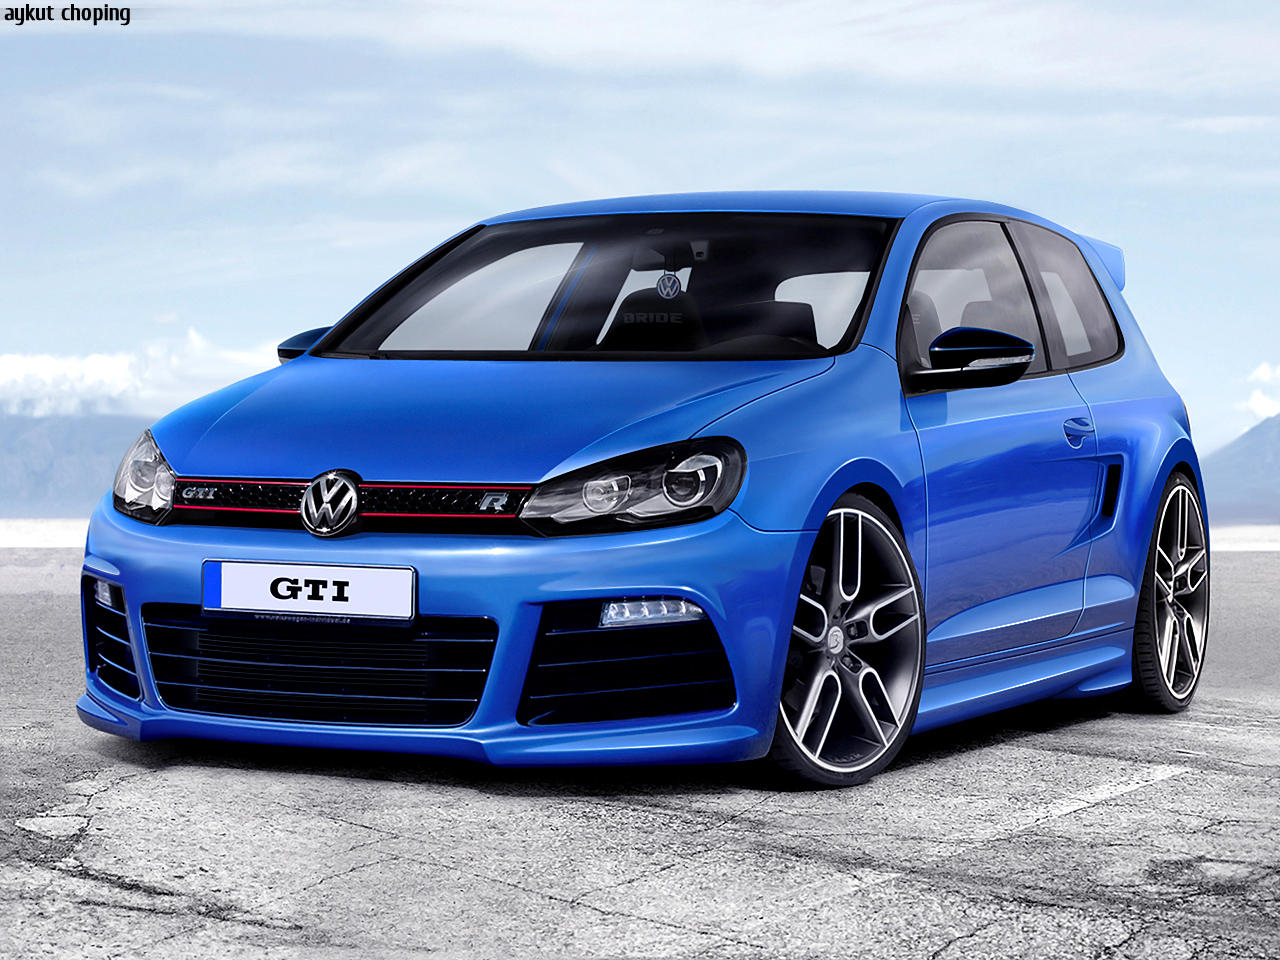 volkswagen golf gti by aykutfiliz on deviantart. Black Bedroom Furniture Sets. Home Design Ideas